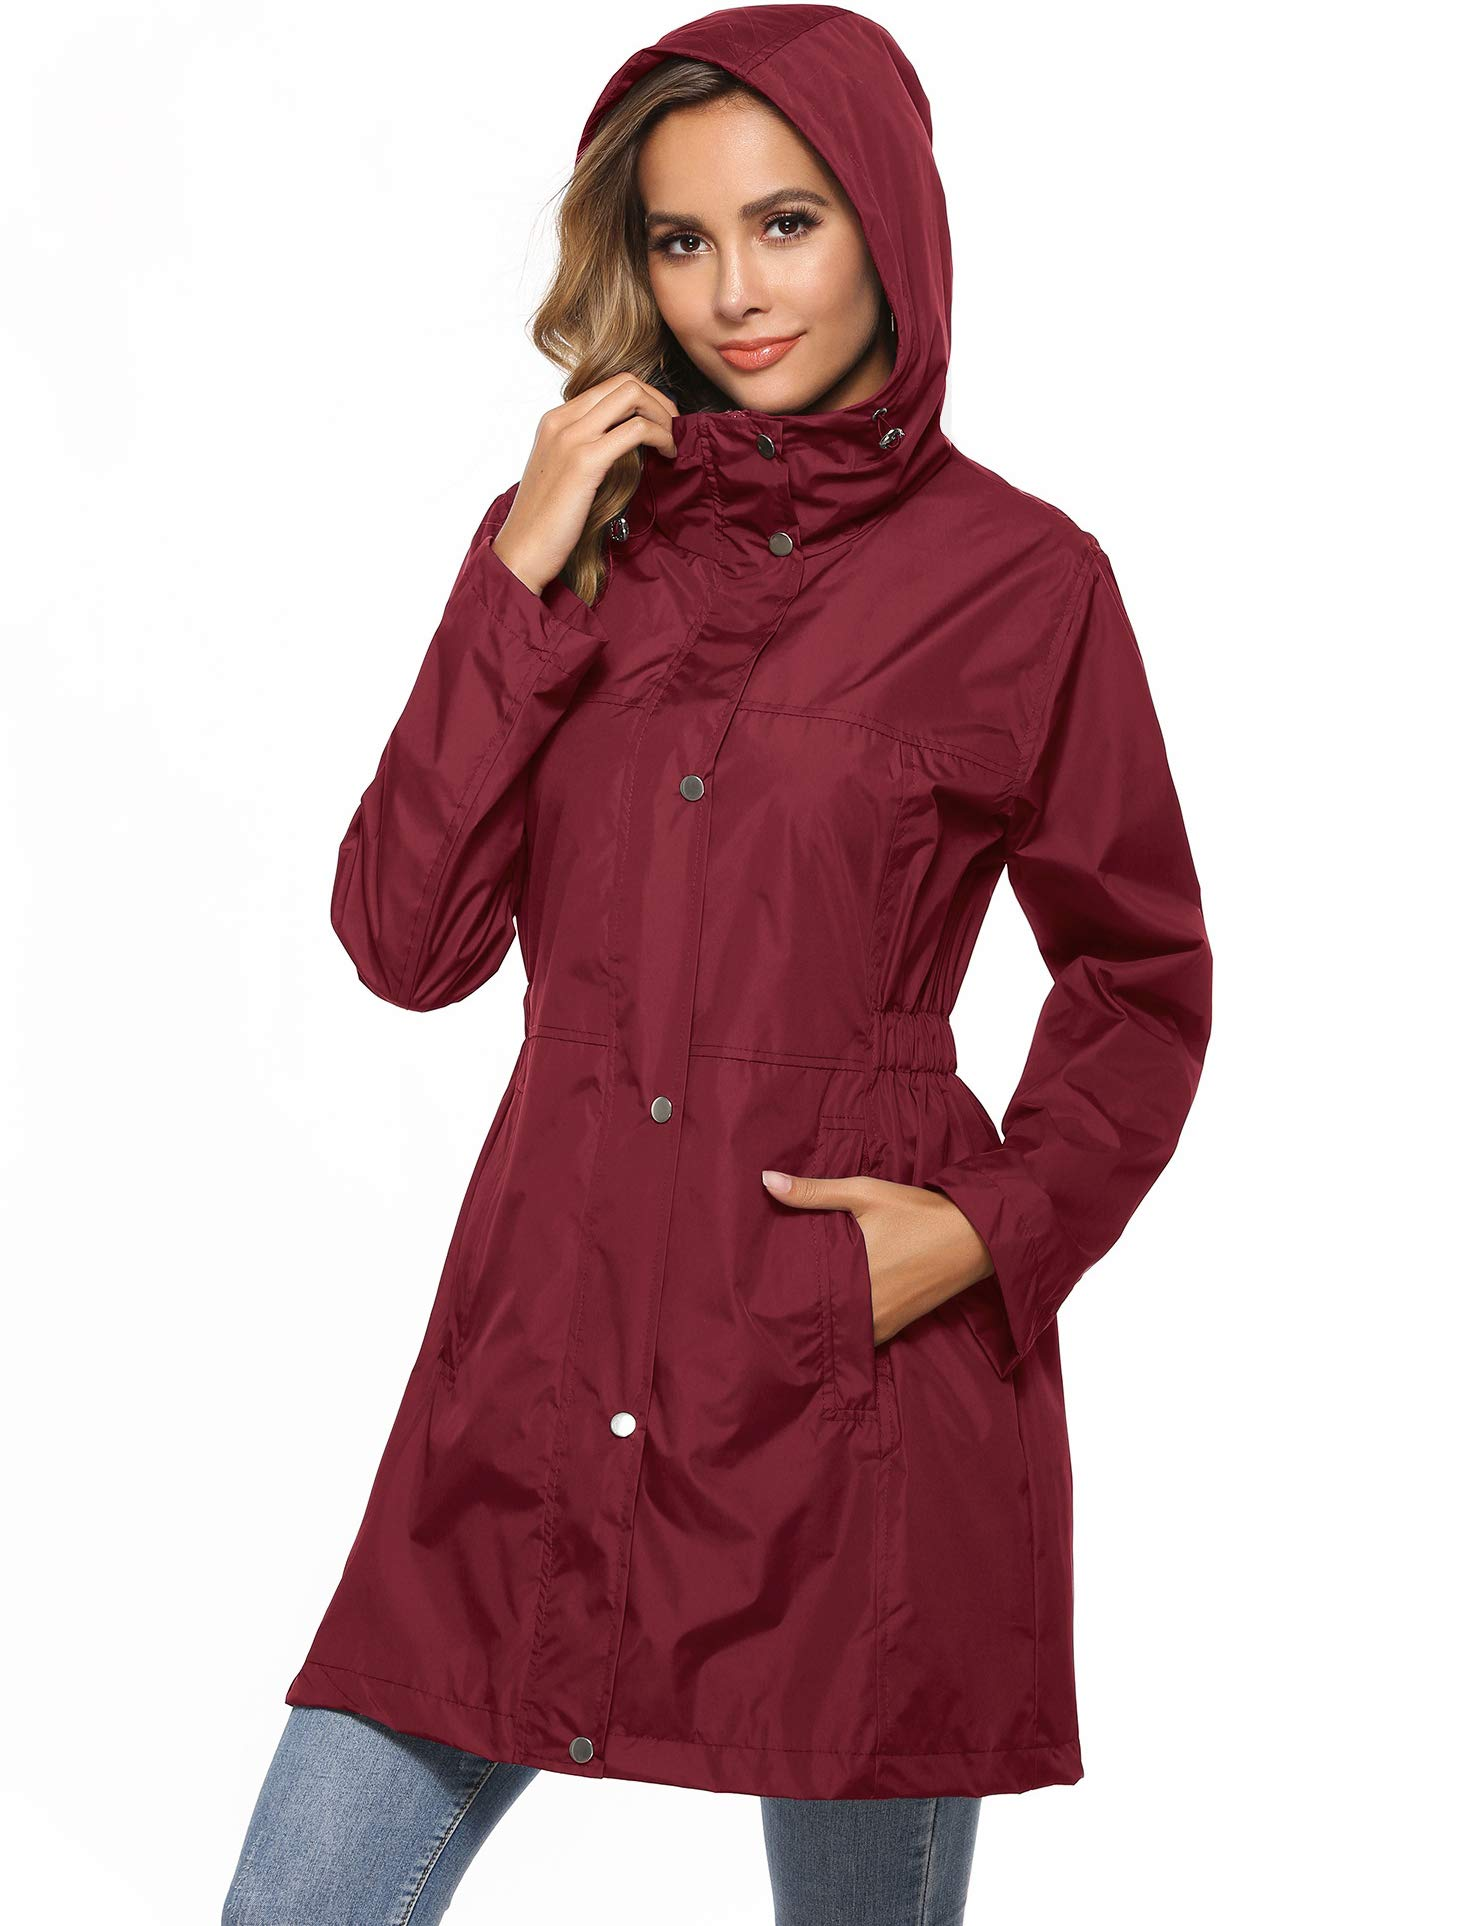 Women's Active Raincoat Windbreaker Classic Rain Jacket Hooded for Fall Winter Running Fishing Camping Wine Red L by Avoogue